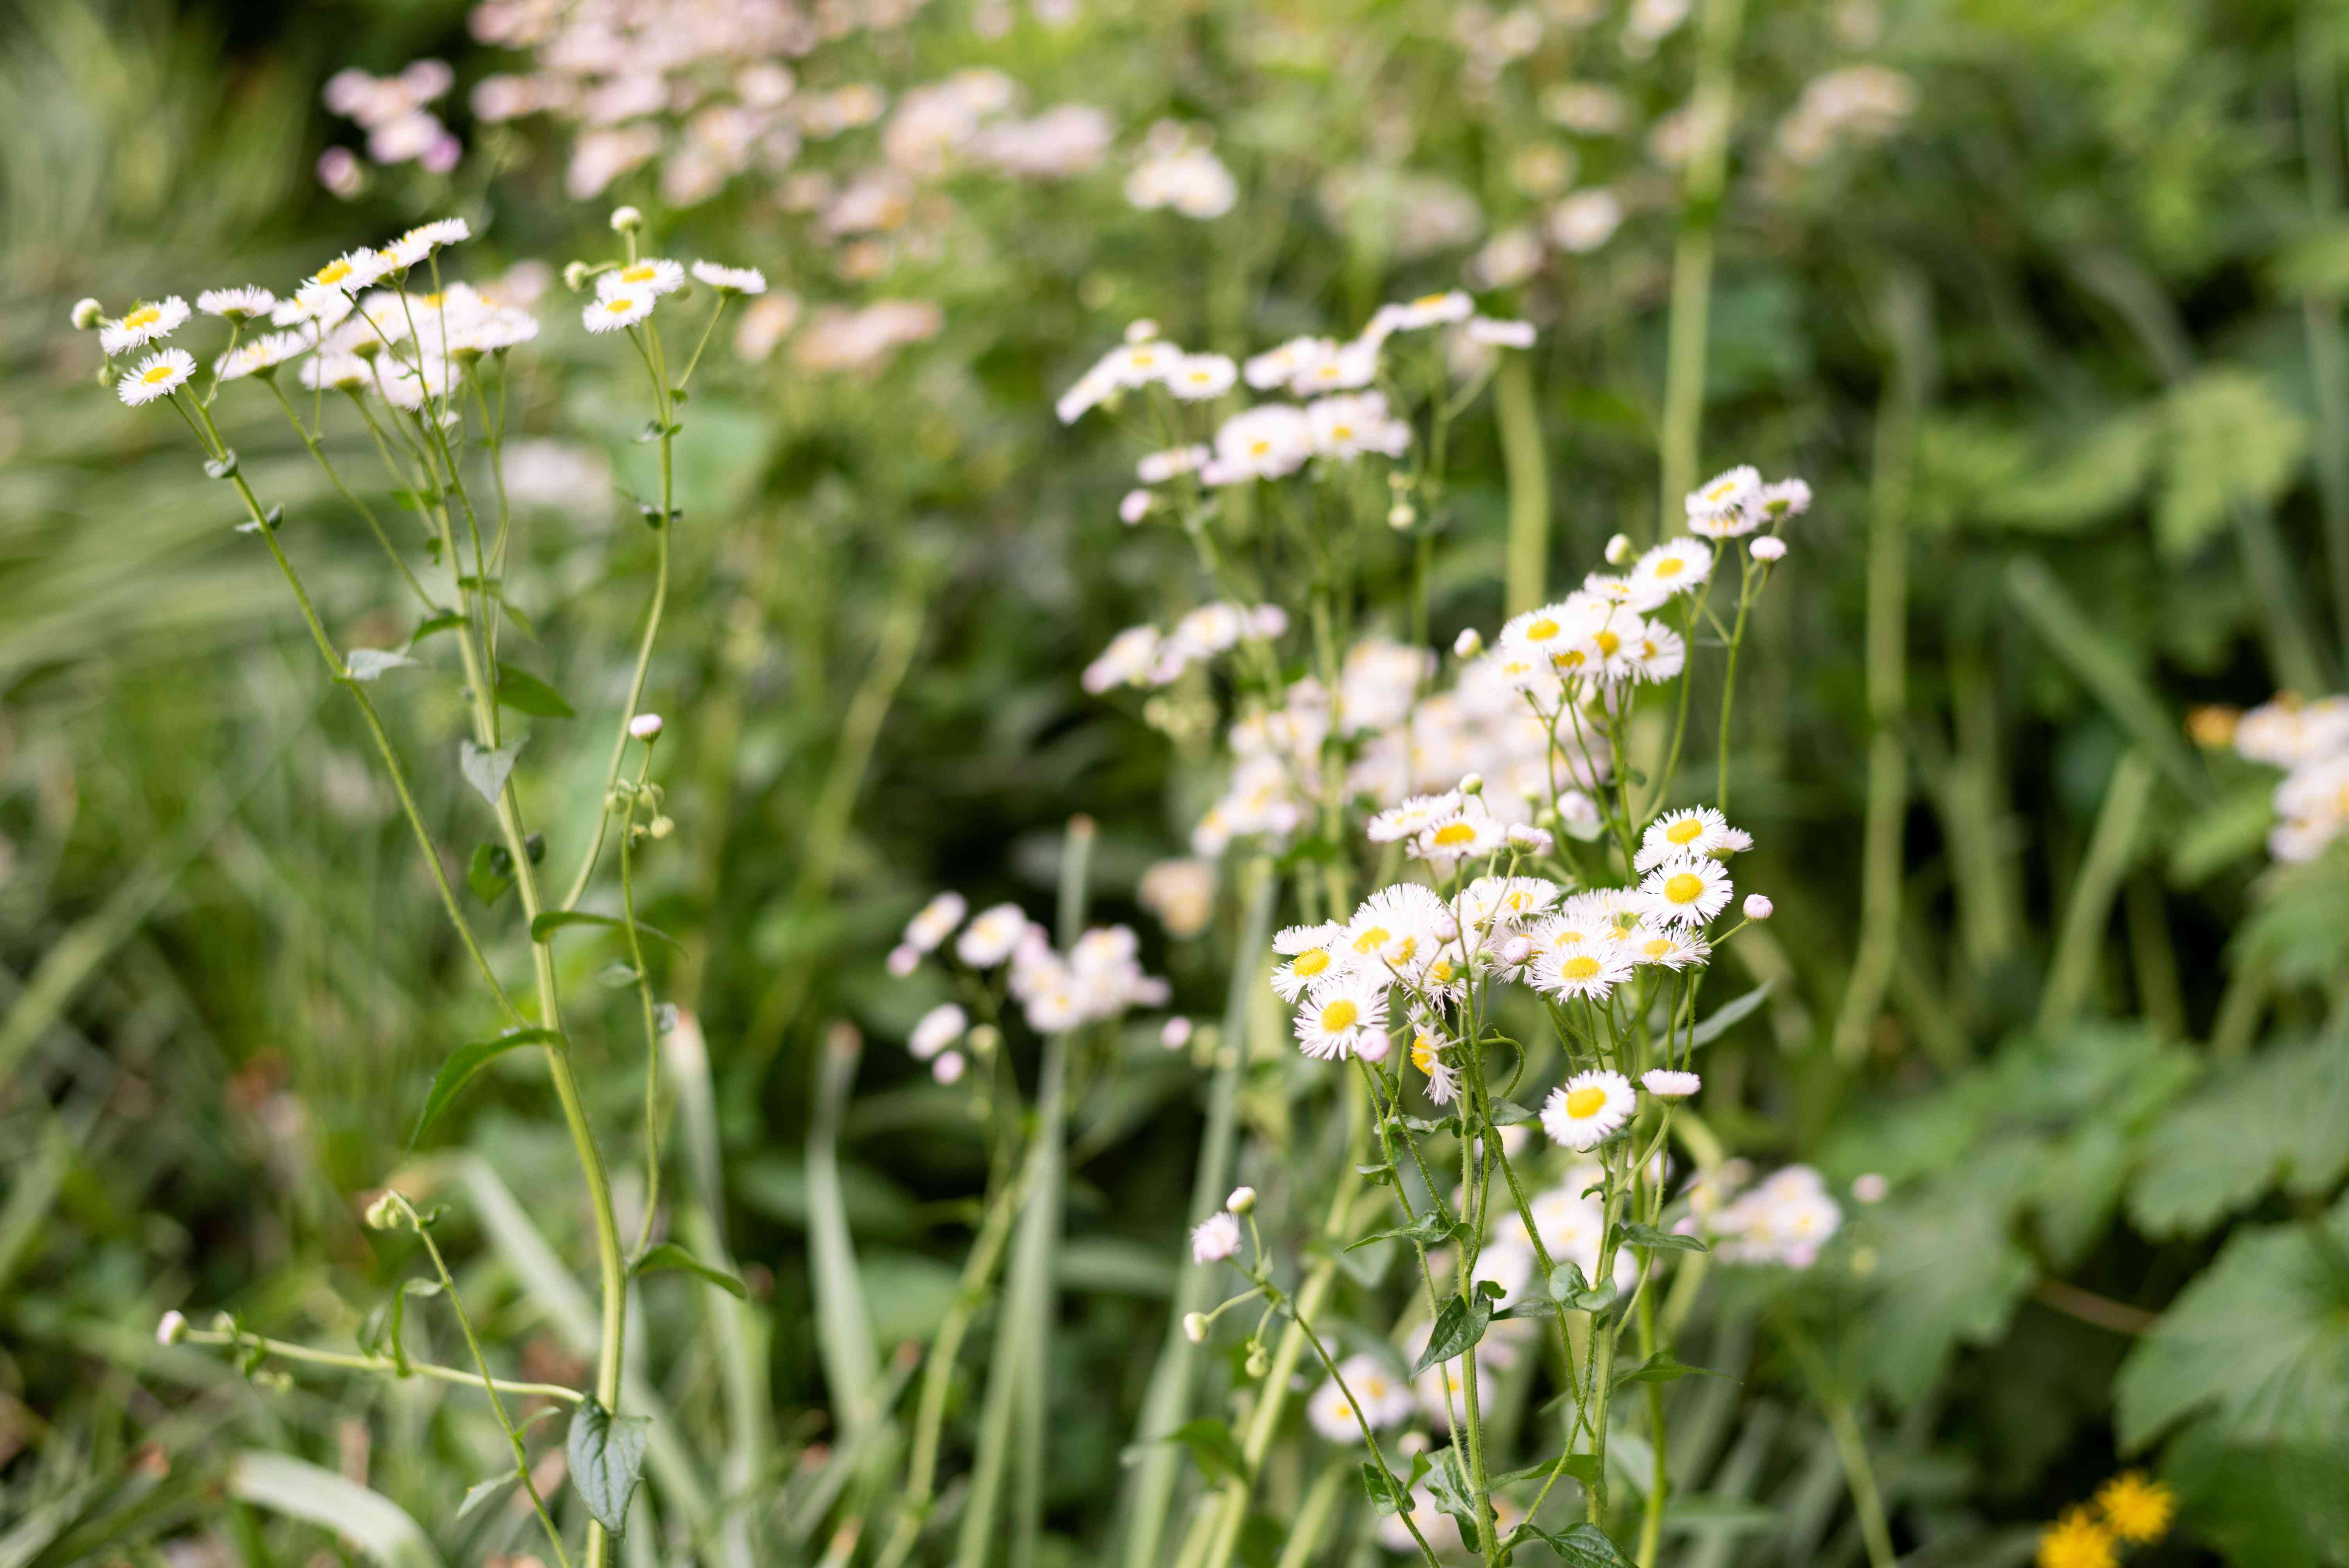 Mexican fleabane plant with small white flowers on tall thin stems